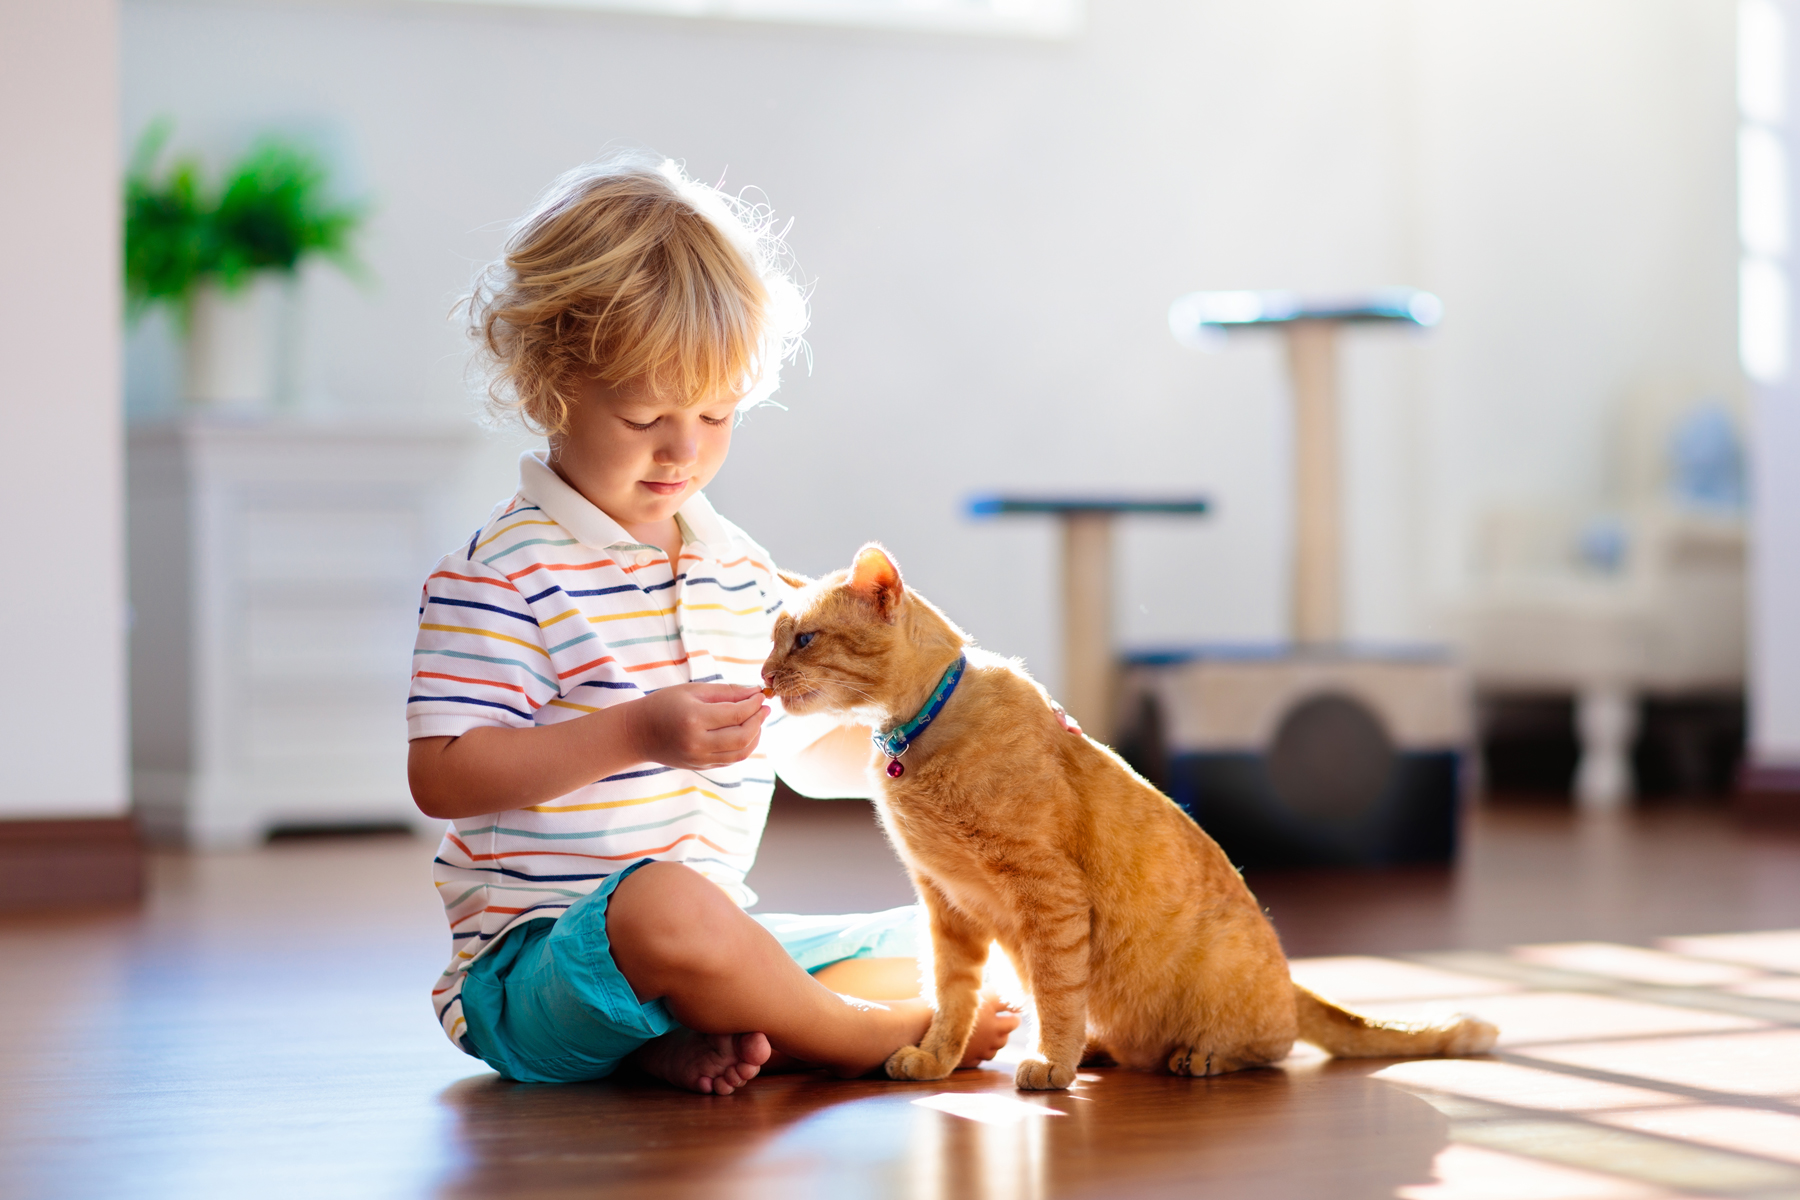 How to keep children safe around cats